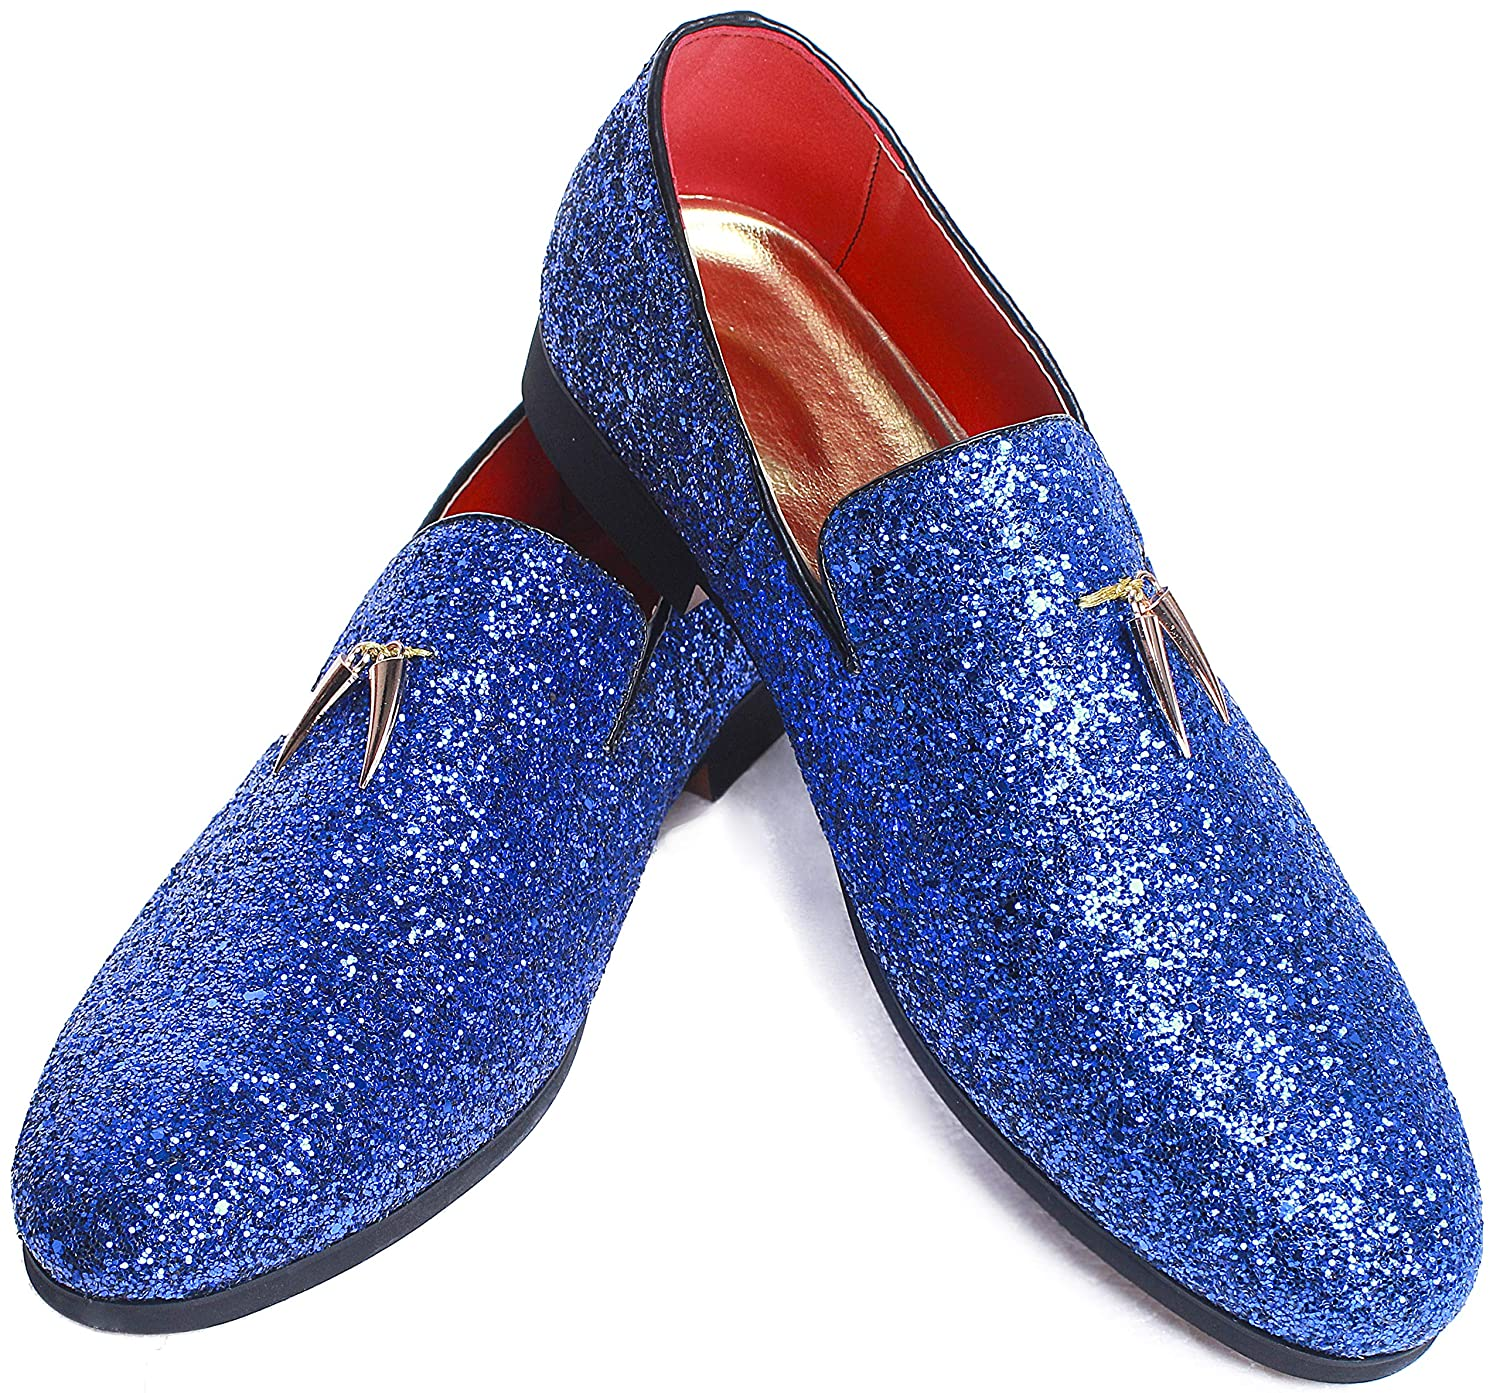 ec2546d298a Men's Modern Glitter Tuxedo Slip-on Loafers Luxury Metallic Sequins  Textured Wedding Prom Dress Shoes